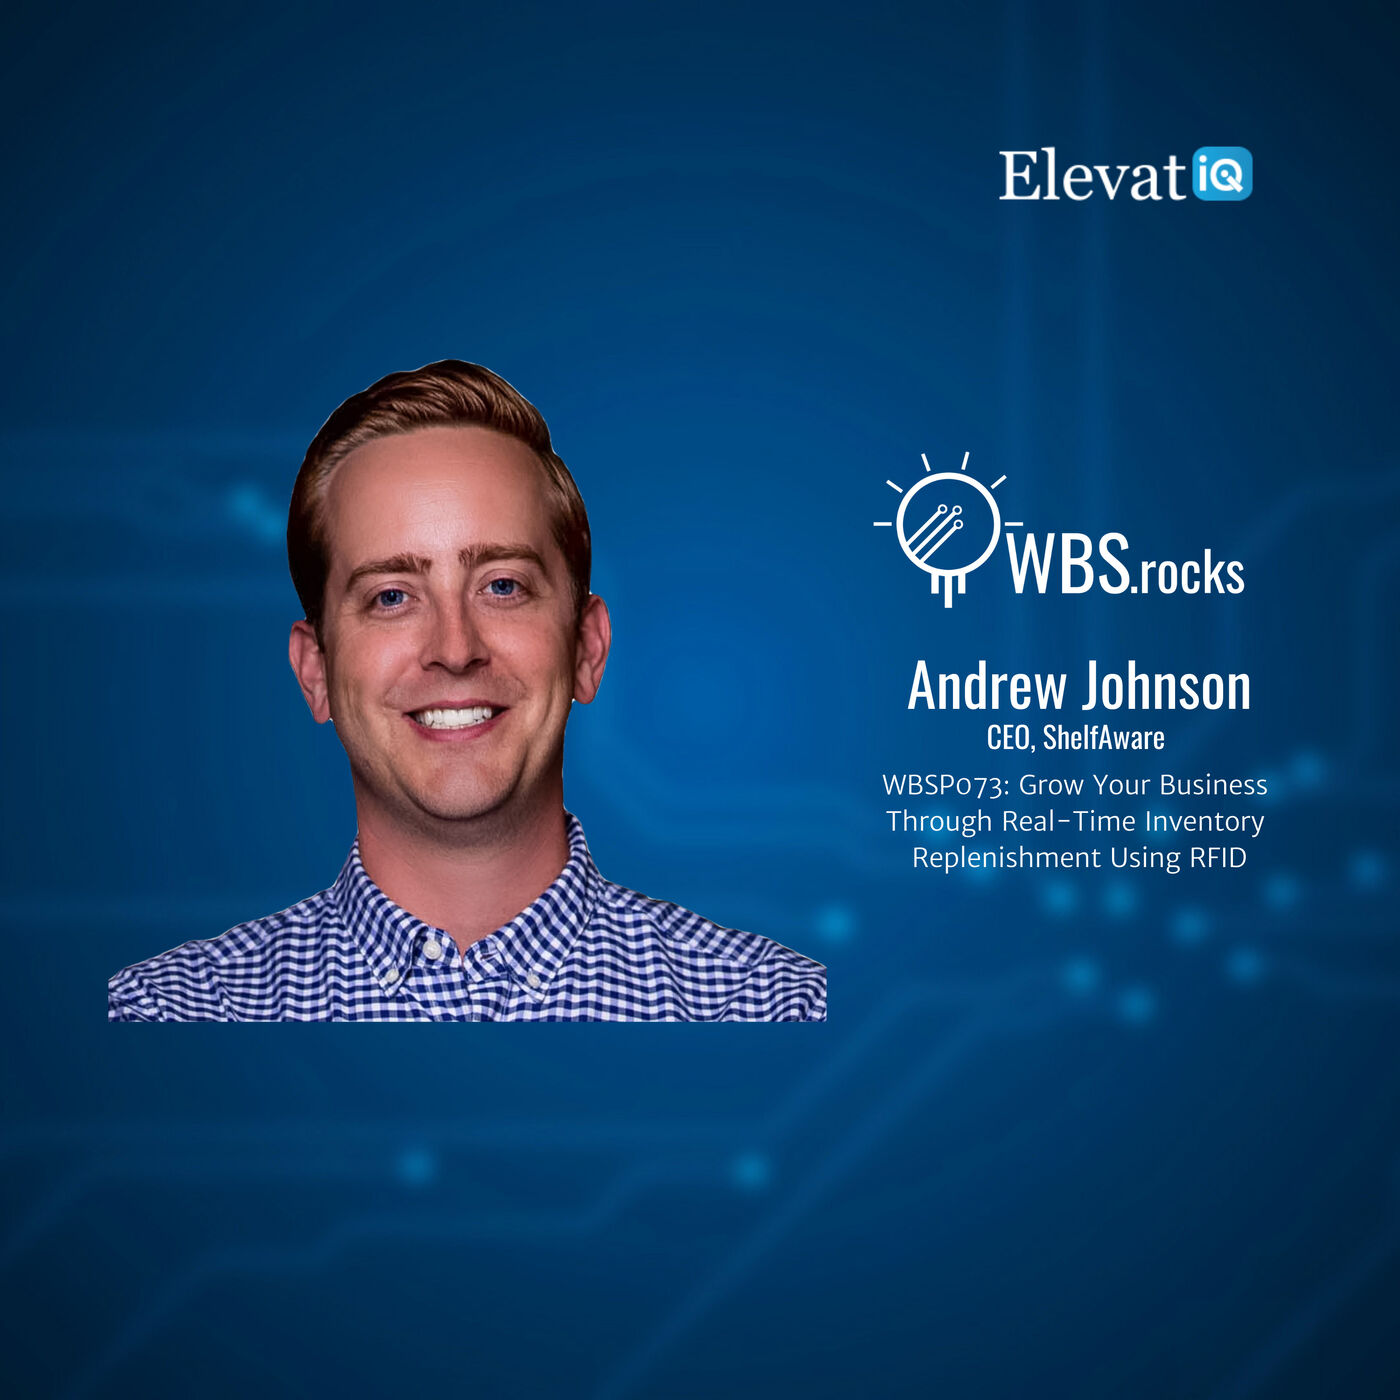 WBSP073: Grow Your Business Through Real-Time Inventory Replenishment Using RFID w/ Andrew Johnson